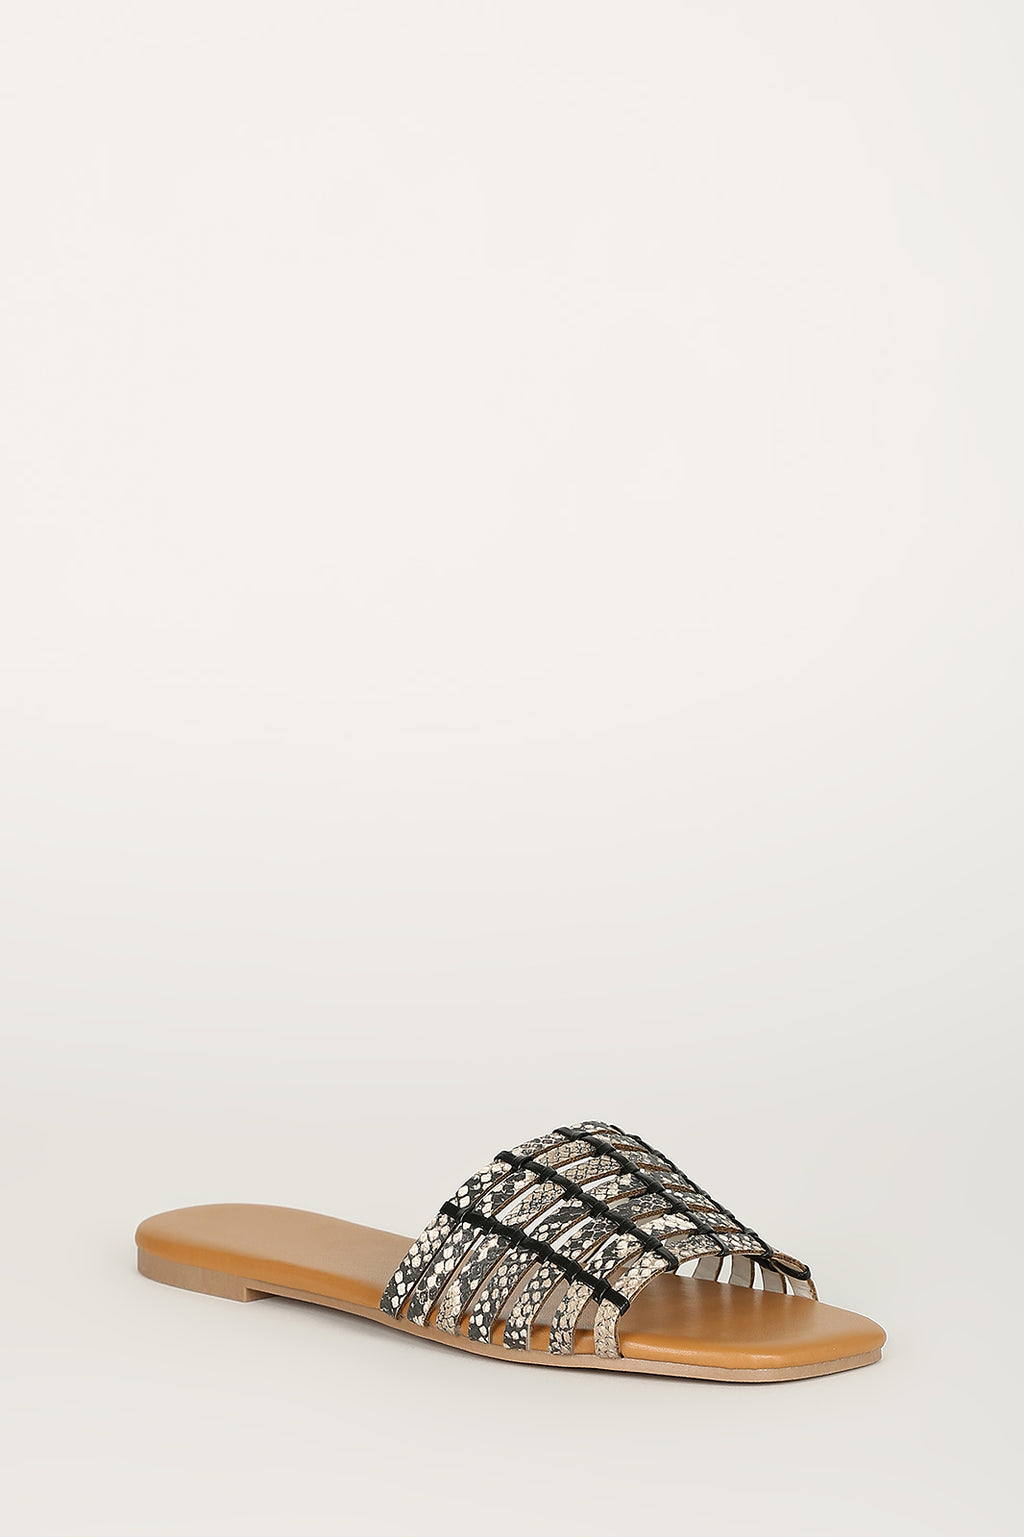 Fiercely Chic - Beige Snake Weaved Sandals